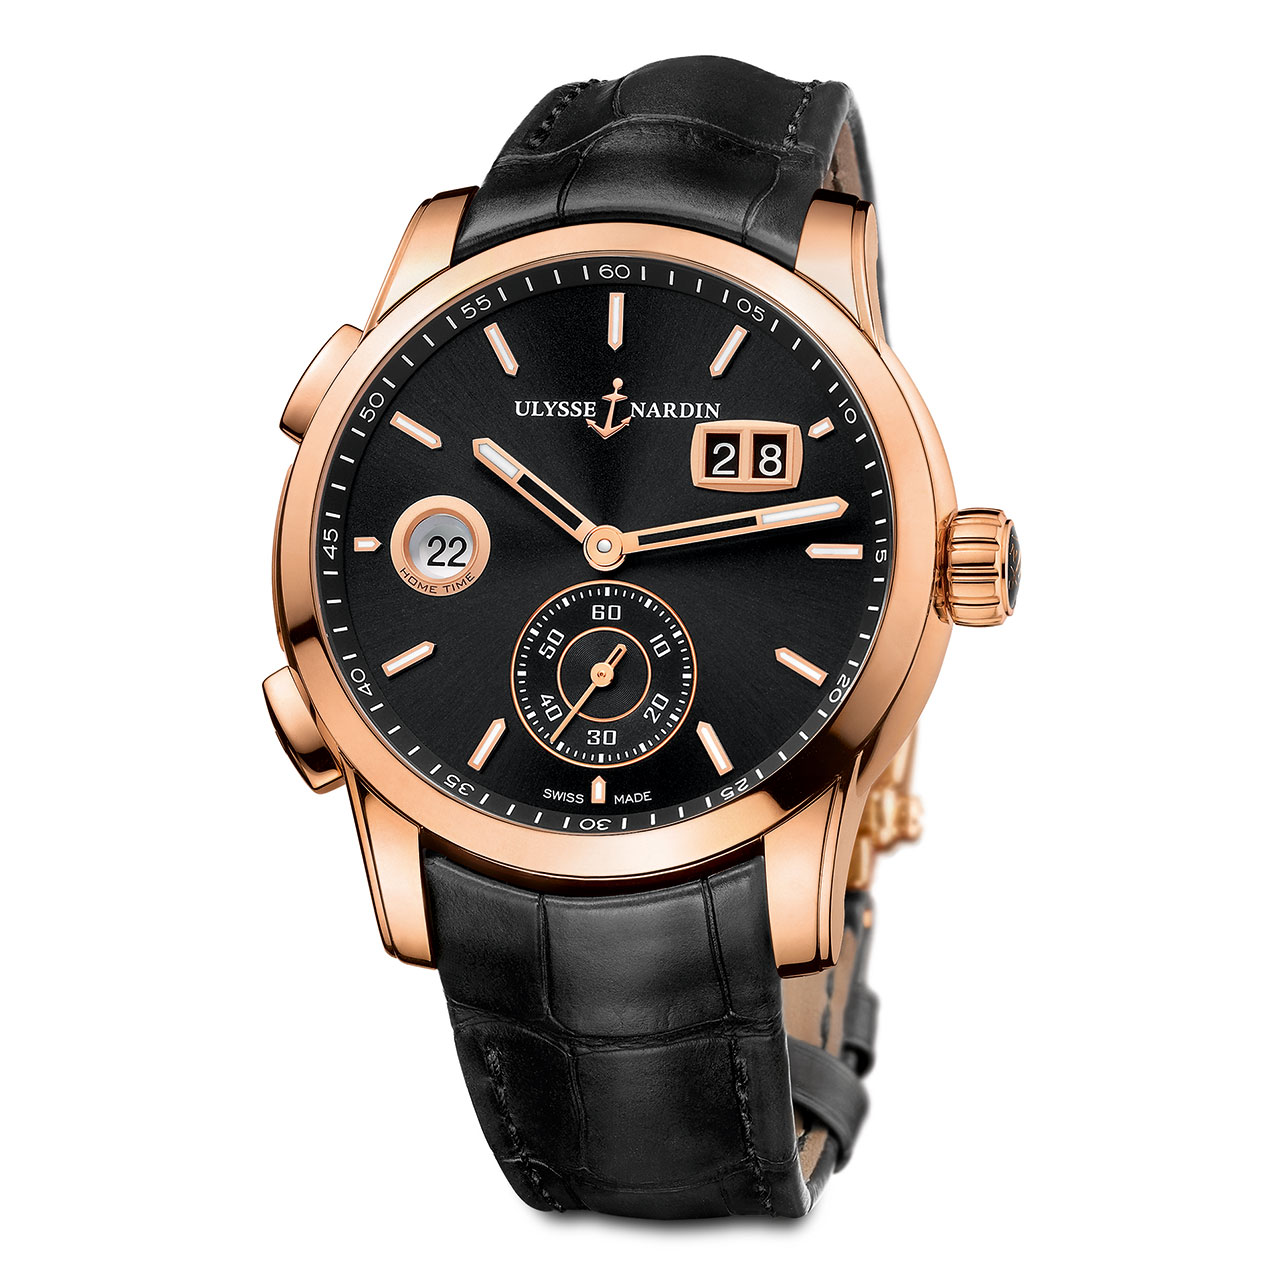 Ulysse Nardin Dual Time Manufacture Watch black dial